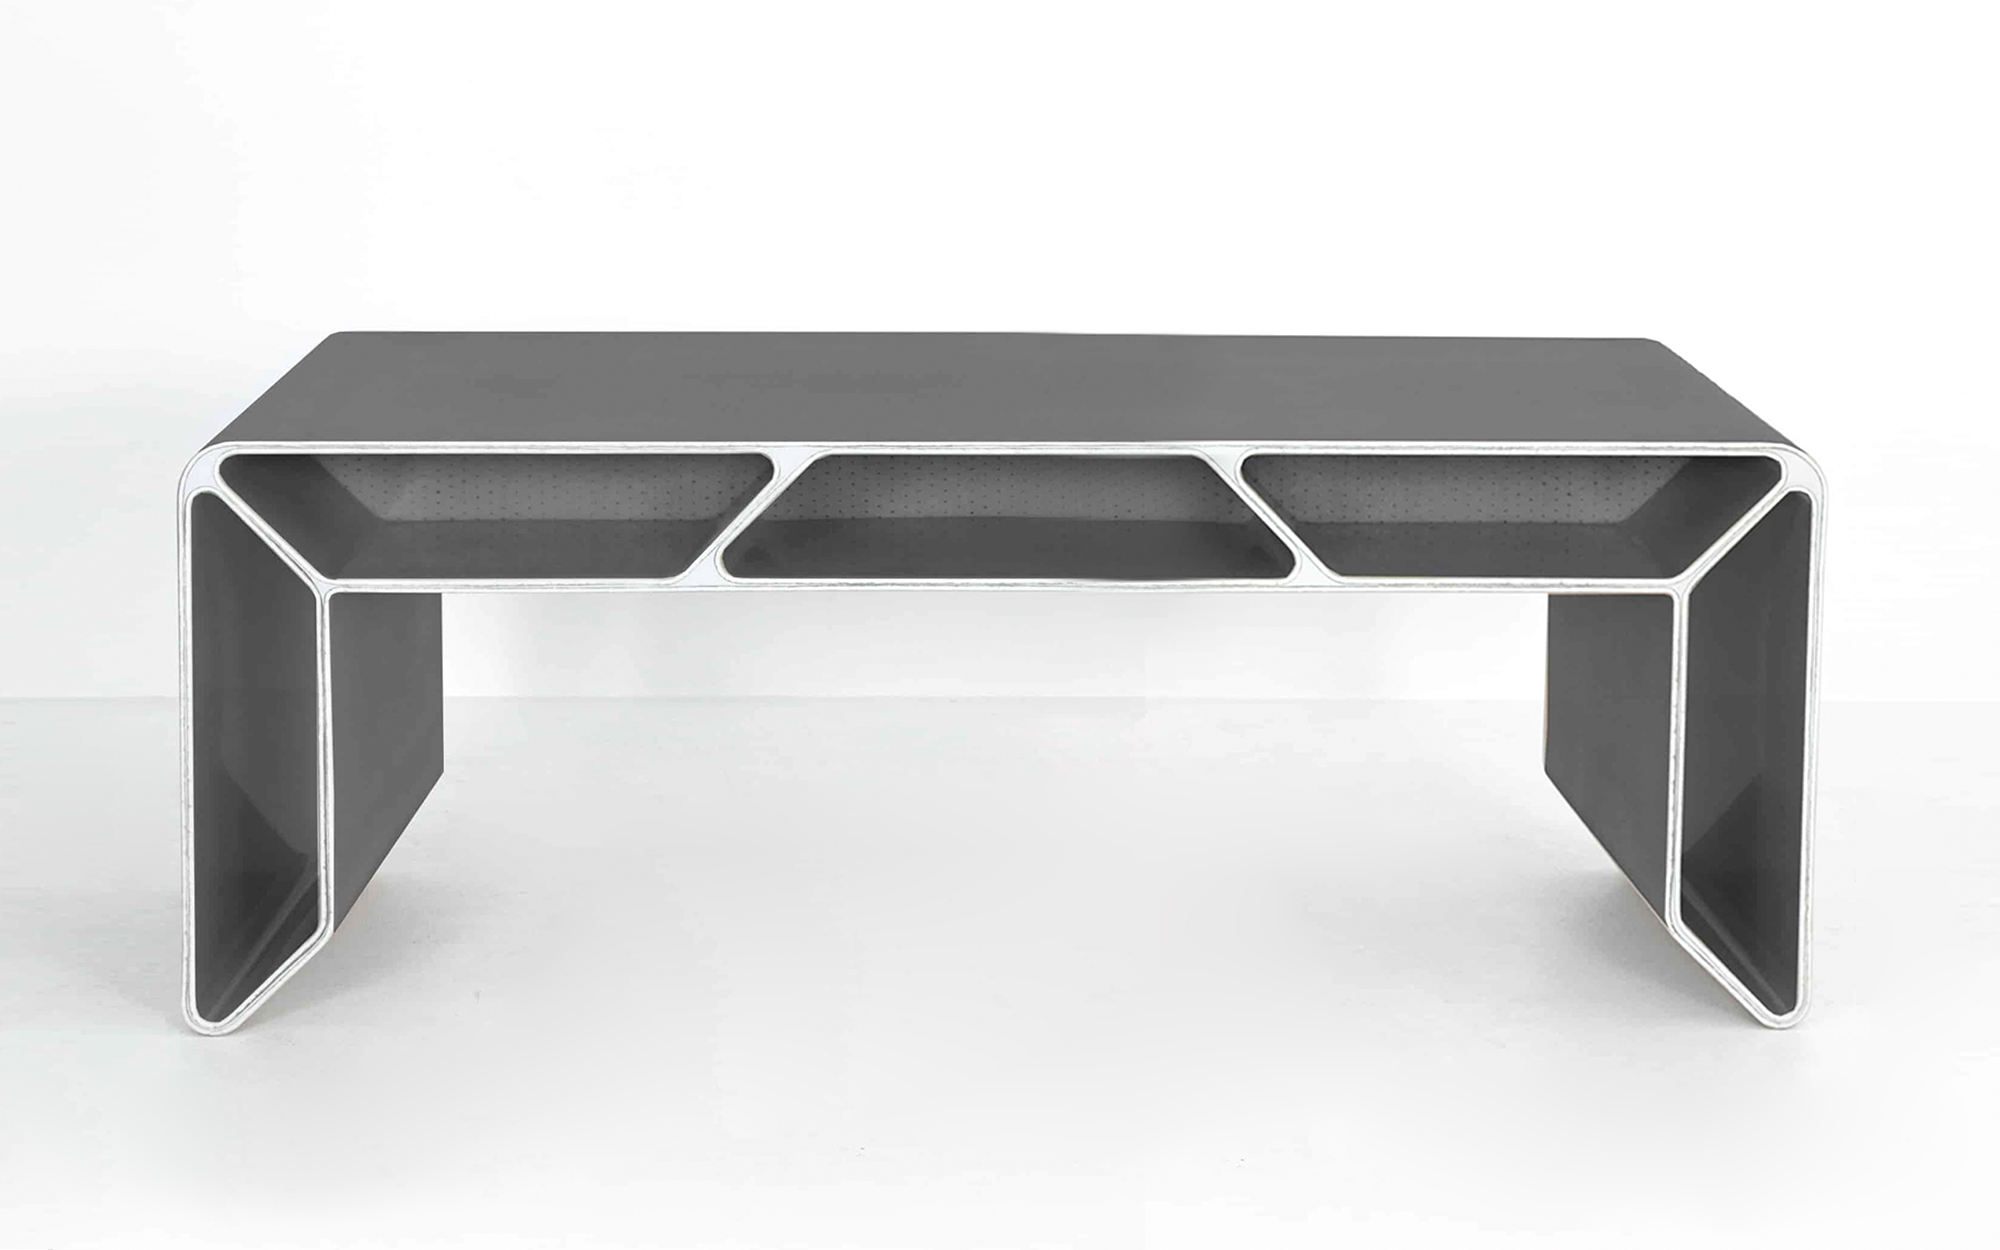 François Bauchet Cellae Bench